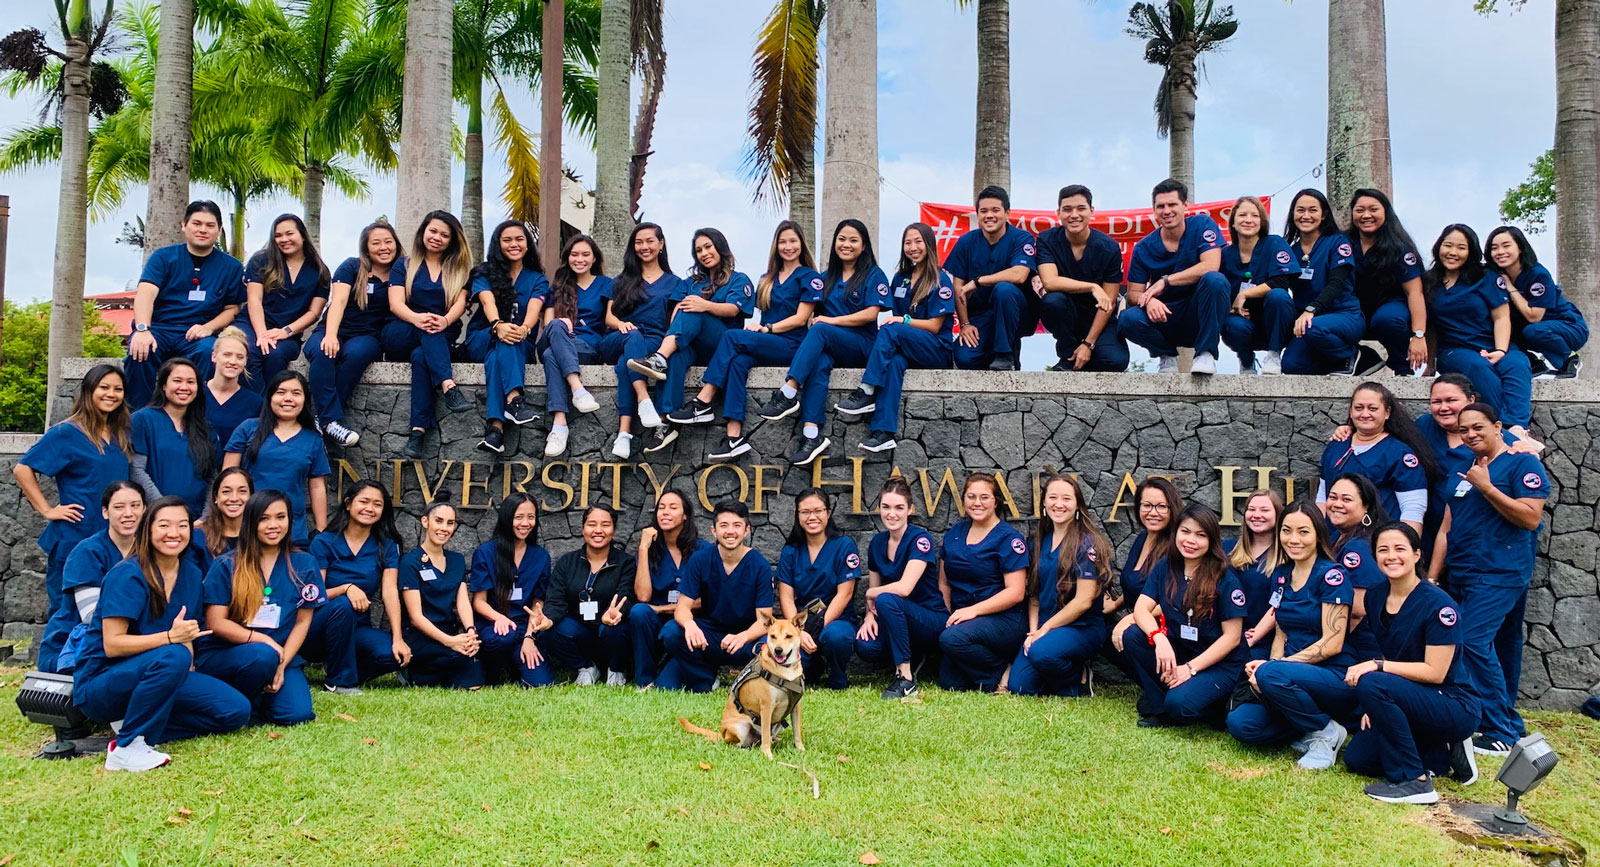 A group photo of the School of Nursing cohort, taken on the lava wall at the main entrance of UH Hilo. The students wear dark blue scrubs.